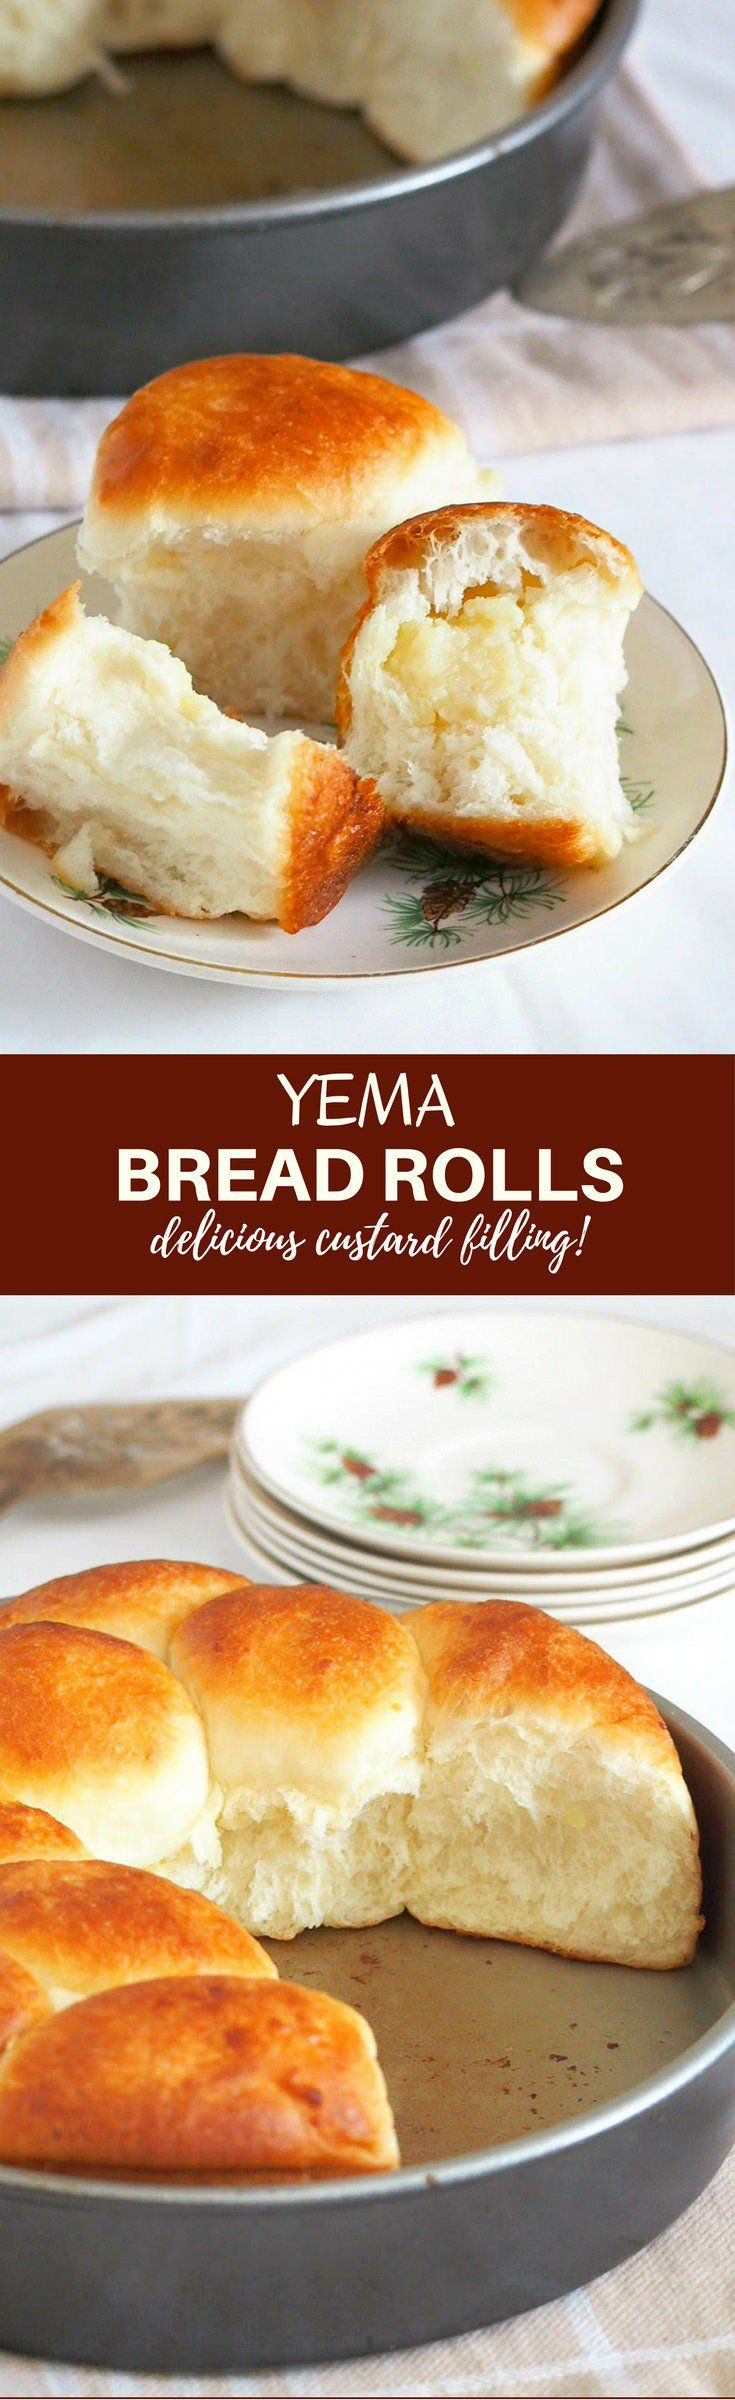 Yema Bread Rolls with soft, fluffy bread and creamy yema filling are the ultimate snacks. Enjoy for breakfast or anytime you need a sweet treat!